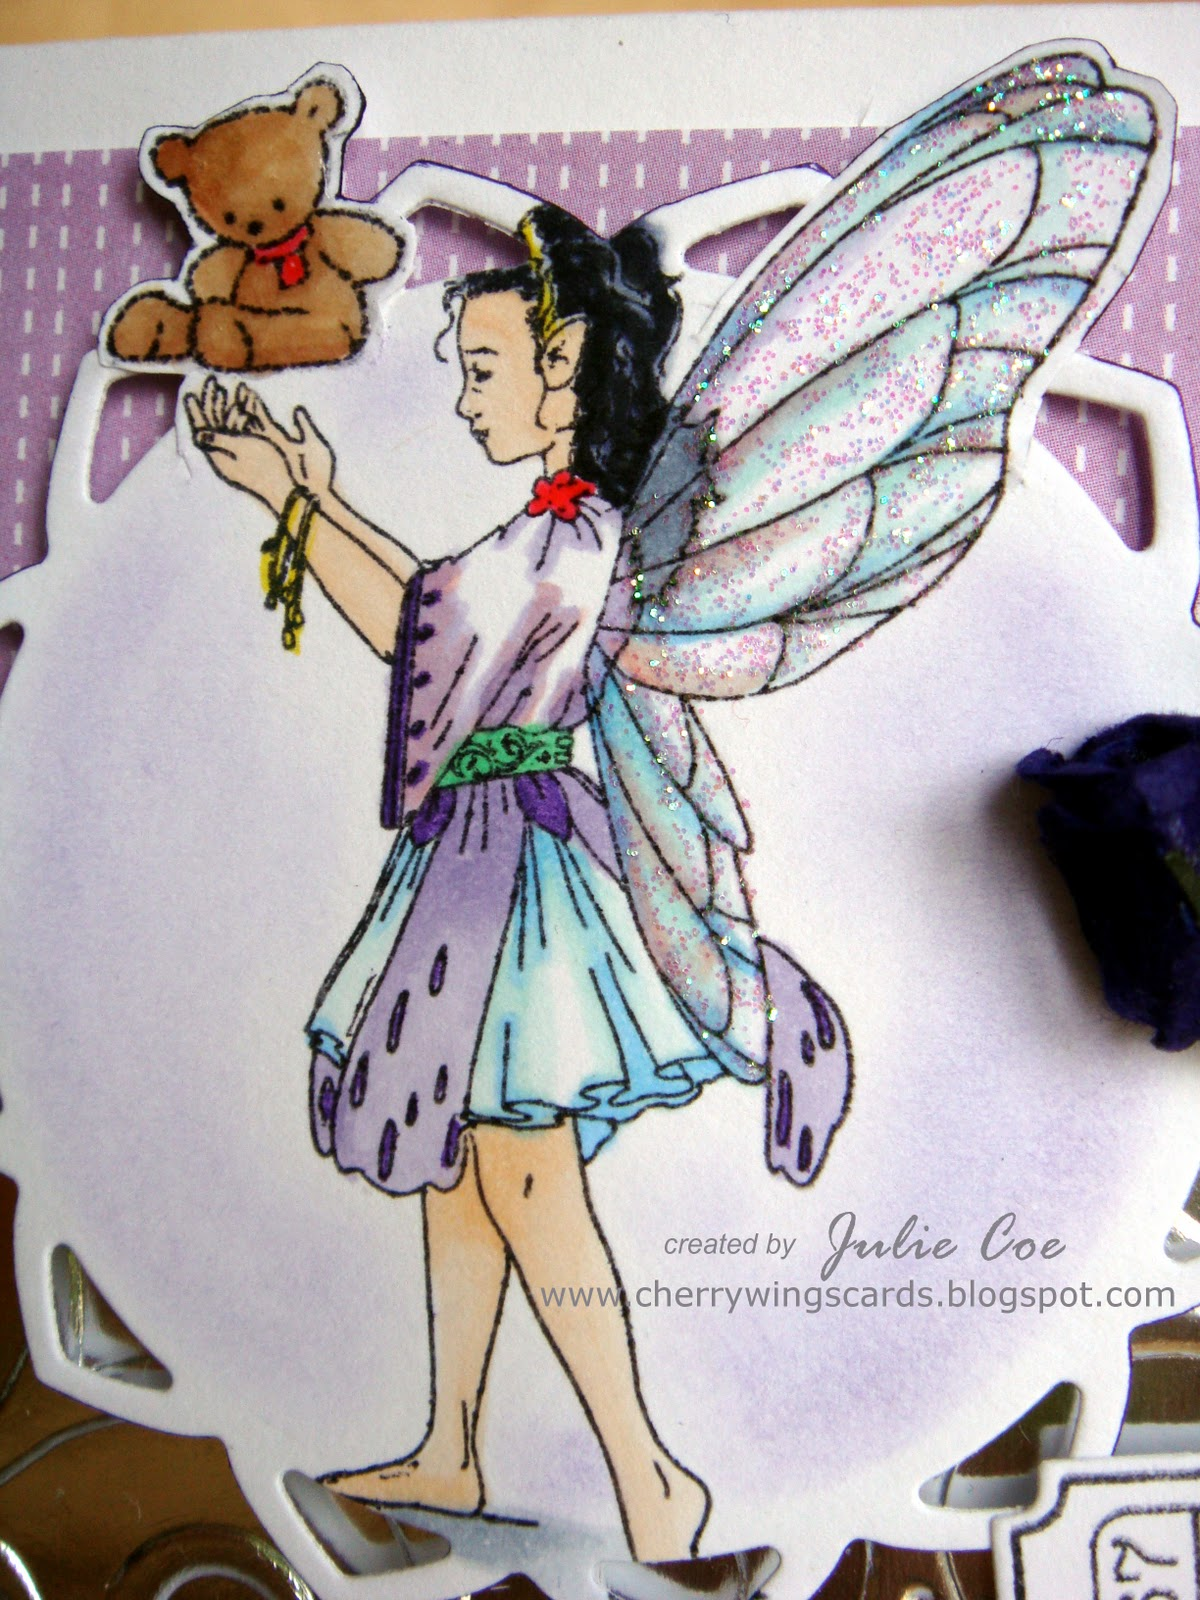 I Coloured The Image With Copic Ciao Marker Pens And Applied Glitter On Her Wings To Make It Shine Always Find Difficult Colour